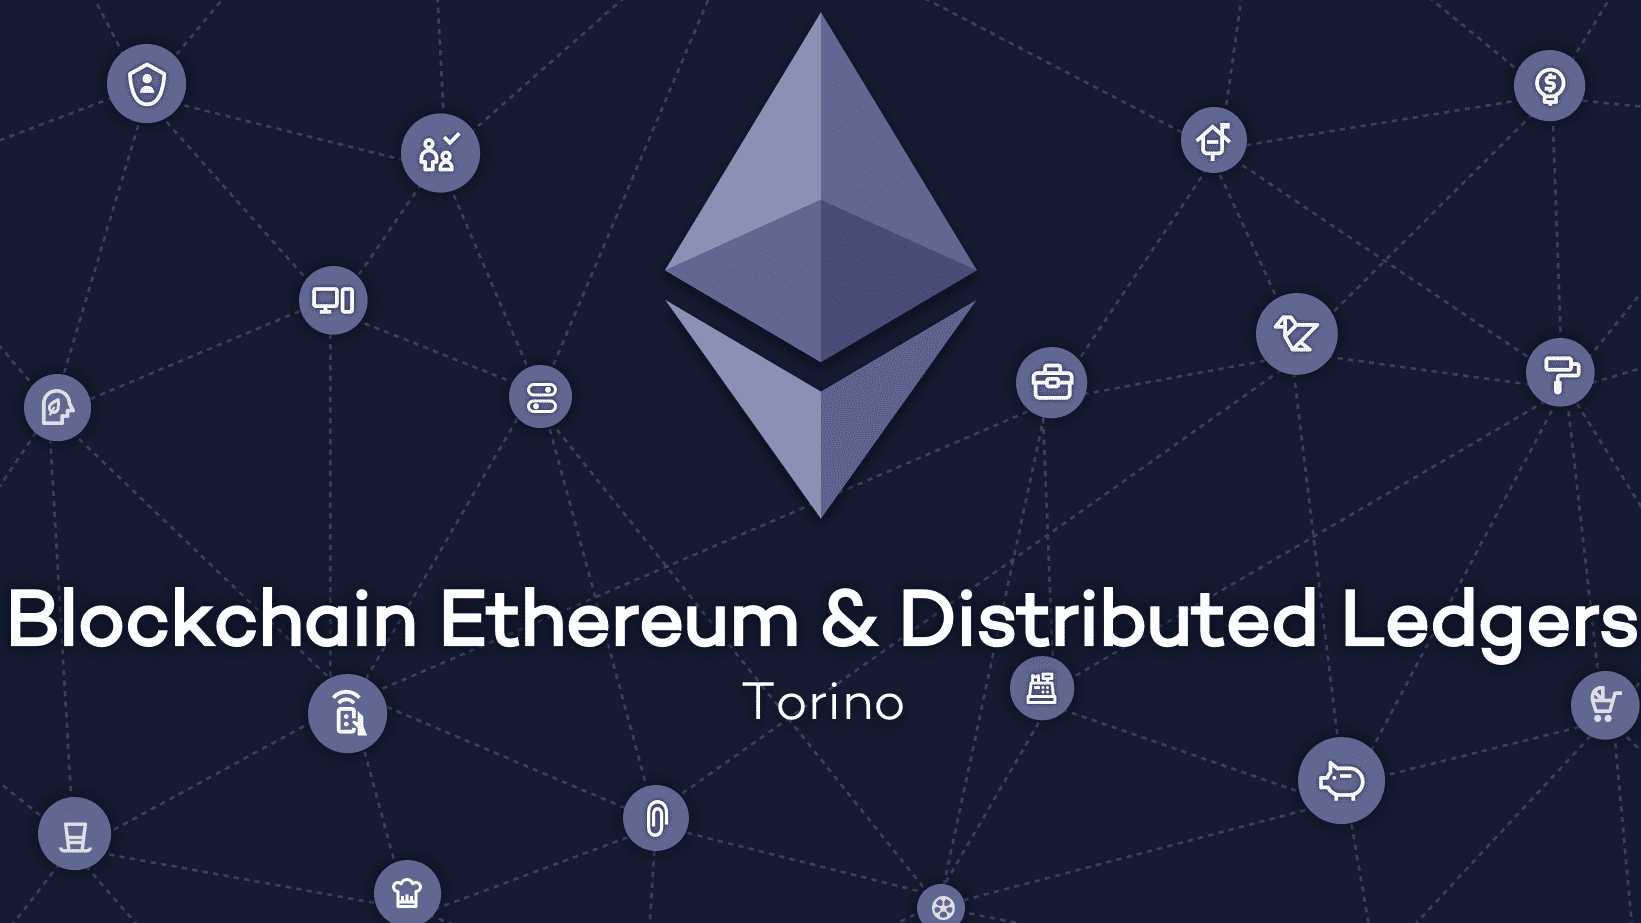 Blockchain Ethereum & Distributed Ledgers TO